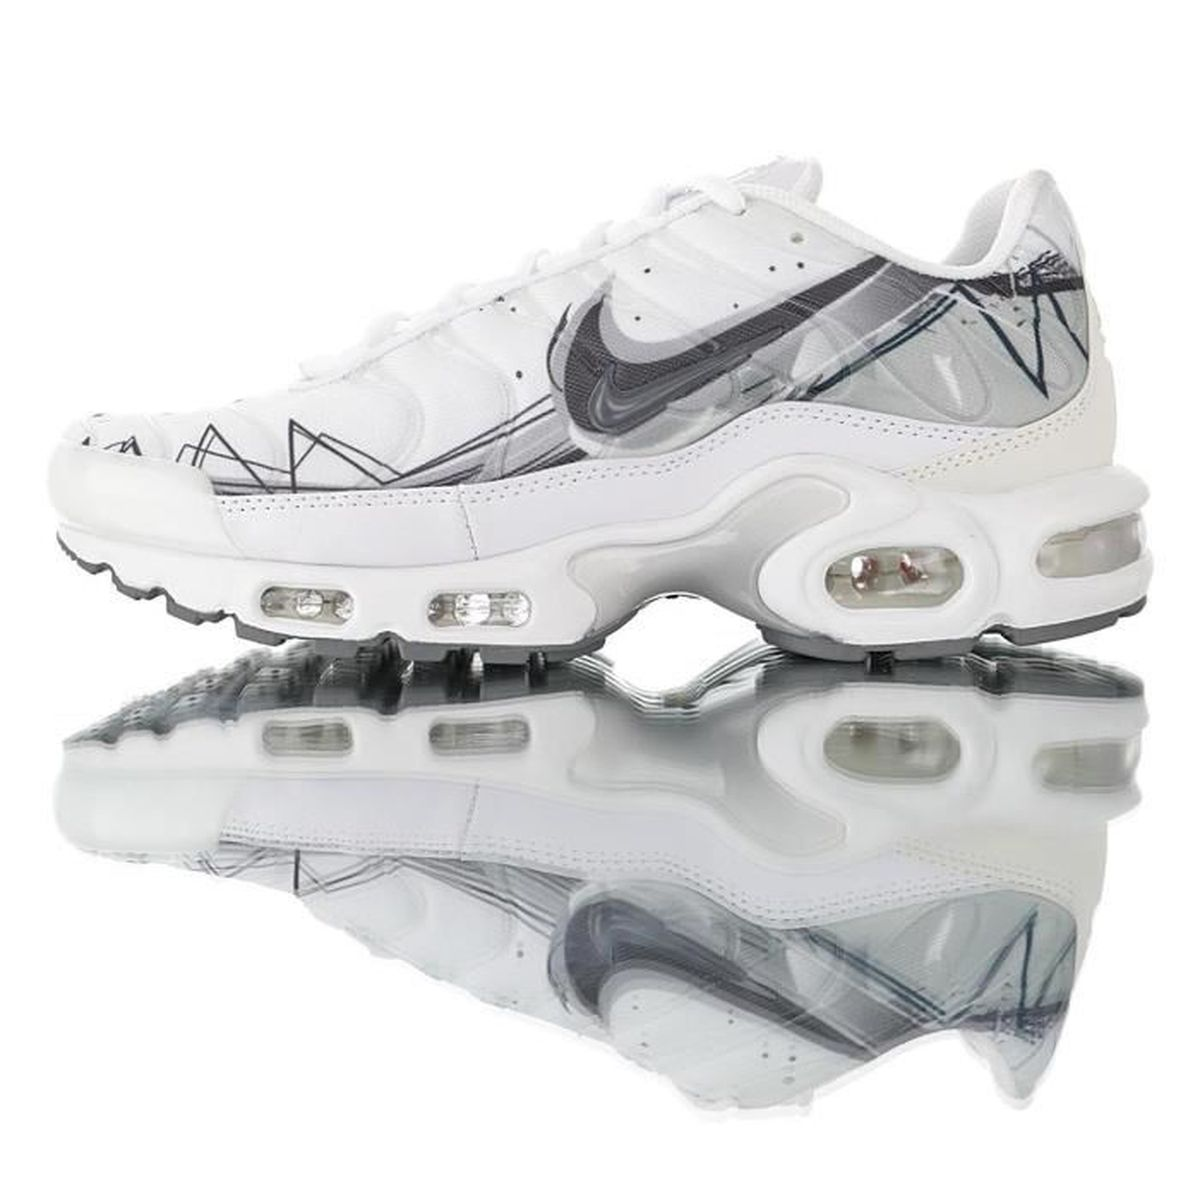 Purchase > nike tn blanche, Up to 75% OFF